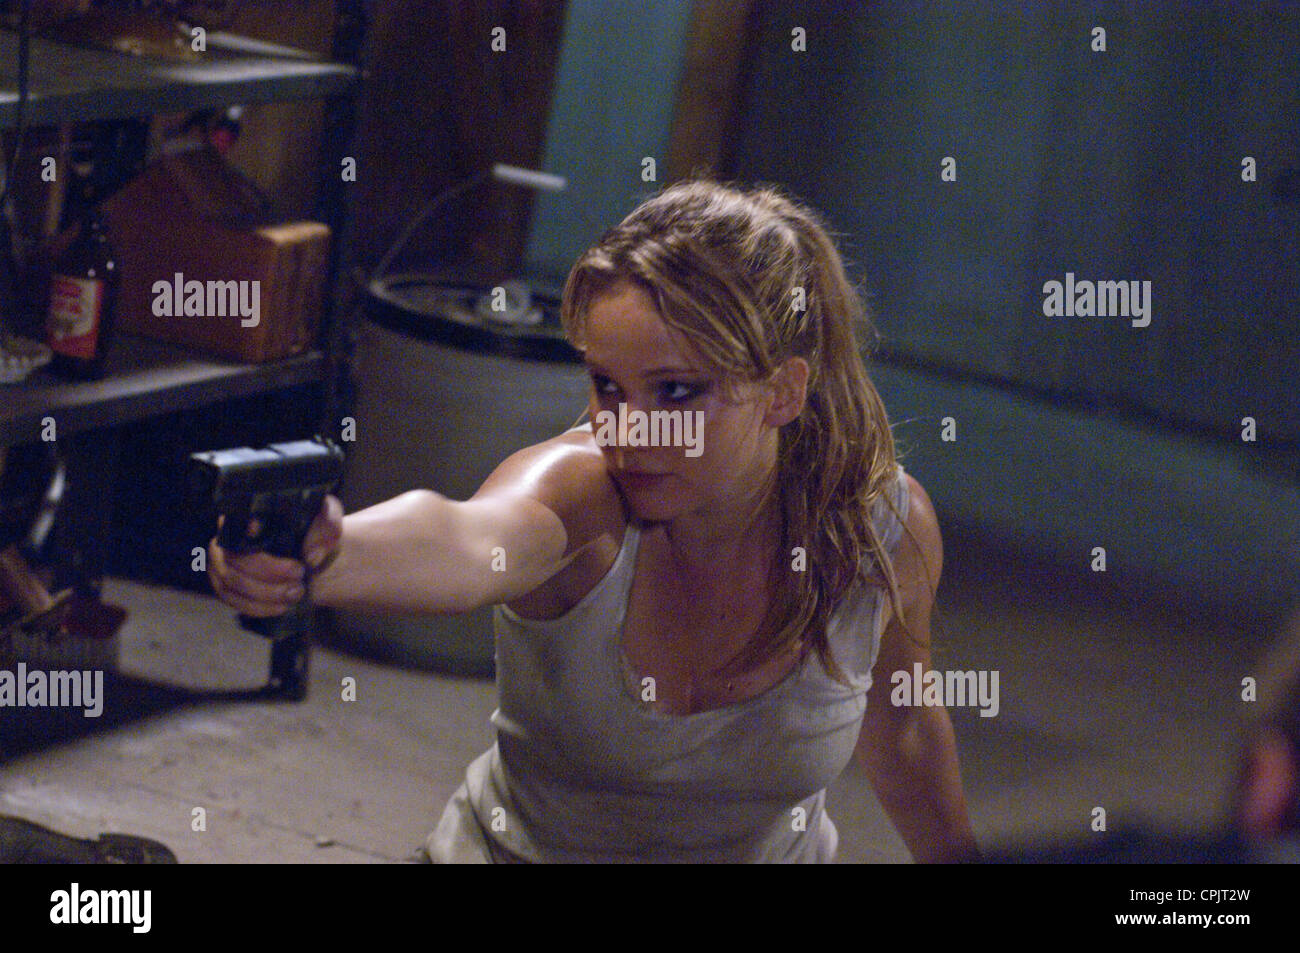 HOUSE AT THE END OF THE STREET (2012) JENNIFER LAWRENCE, MARK TONDERAI (DIR) 002 MOVIESTORE COLLECTION LTD - Stock Image